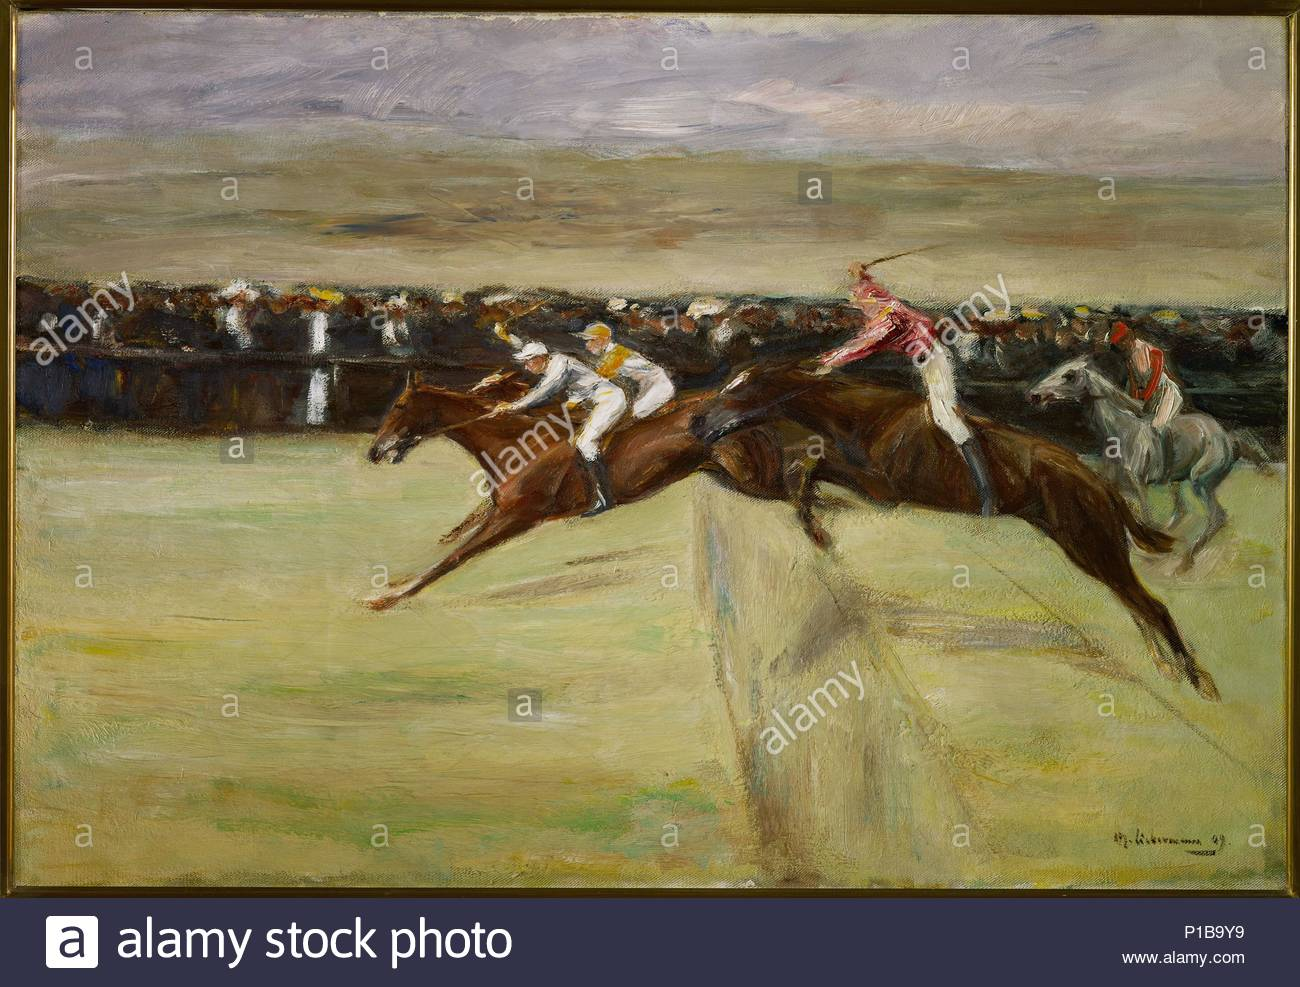 Horse racining in the Cascine, near Florence, Italy, 1909 Canvas,61 x 88 cm. Author: Max Liebermann (1847-1935). Location: Private Collection,, Germany. - Stock Image